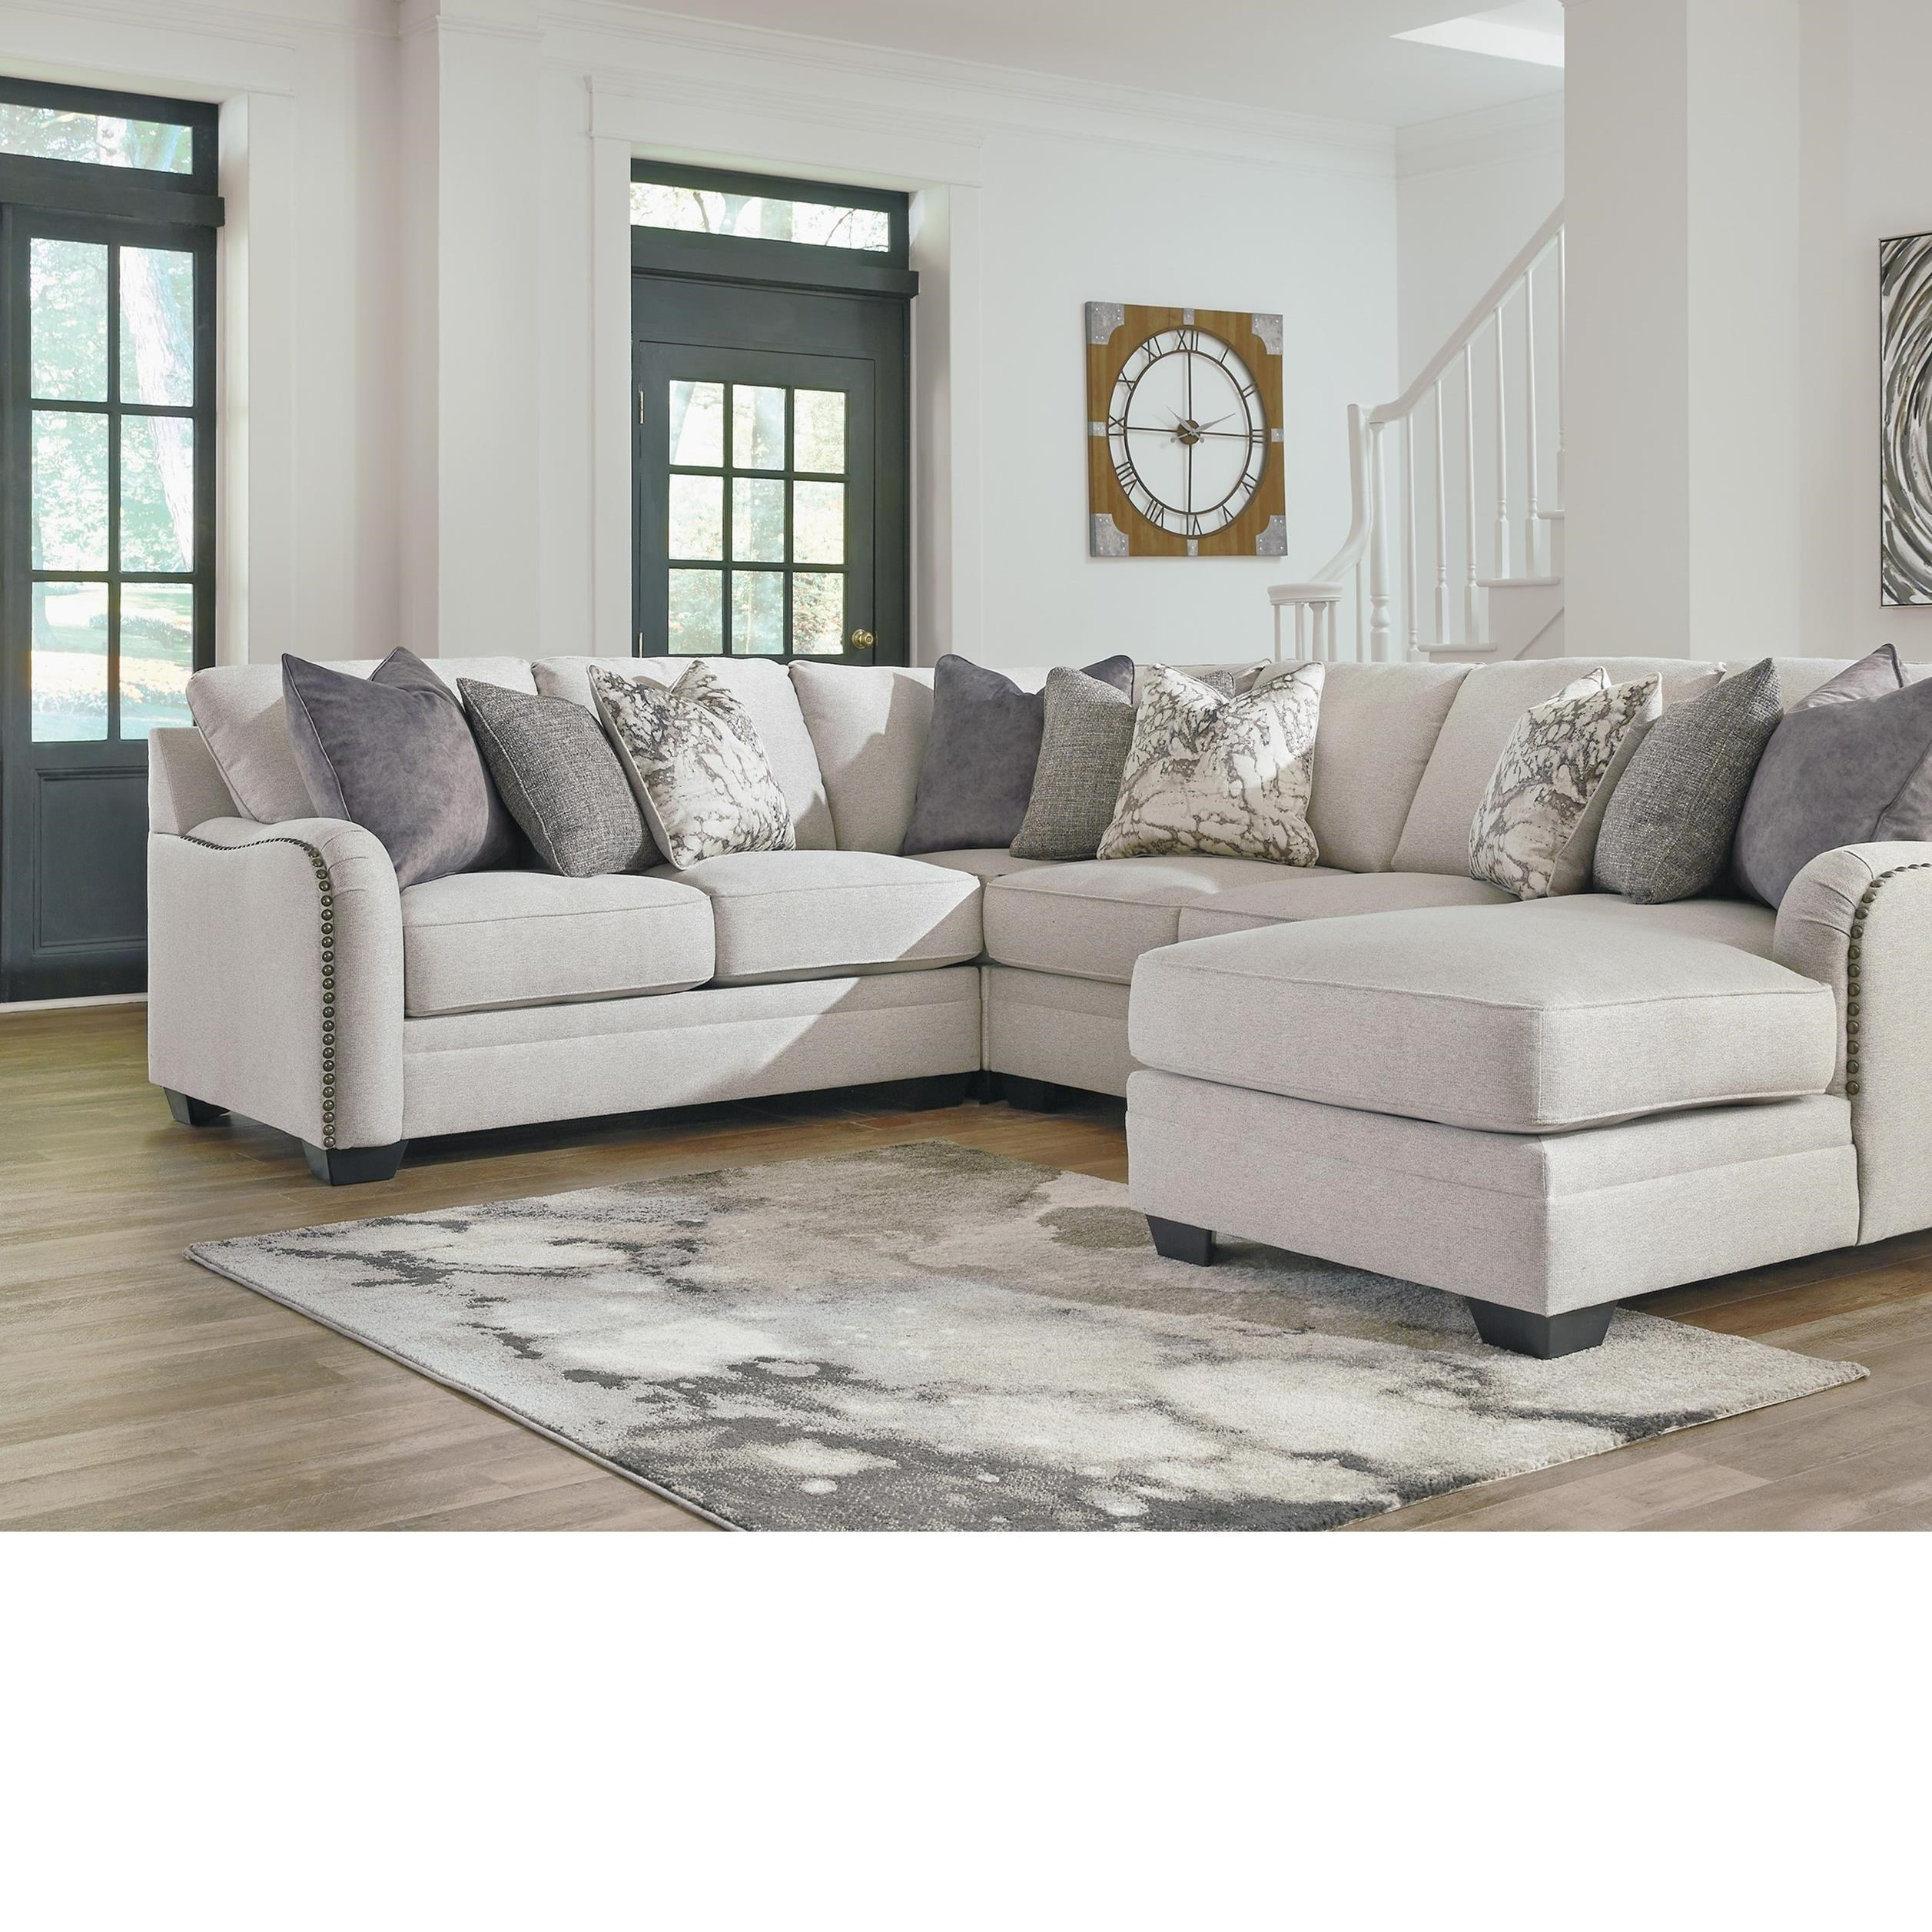 sofa ashley barcelona 2 cuerpos sleeper tampa florida 4 piece sectional review home co